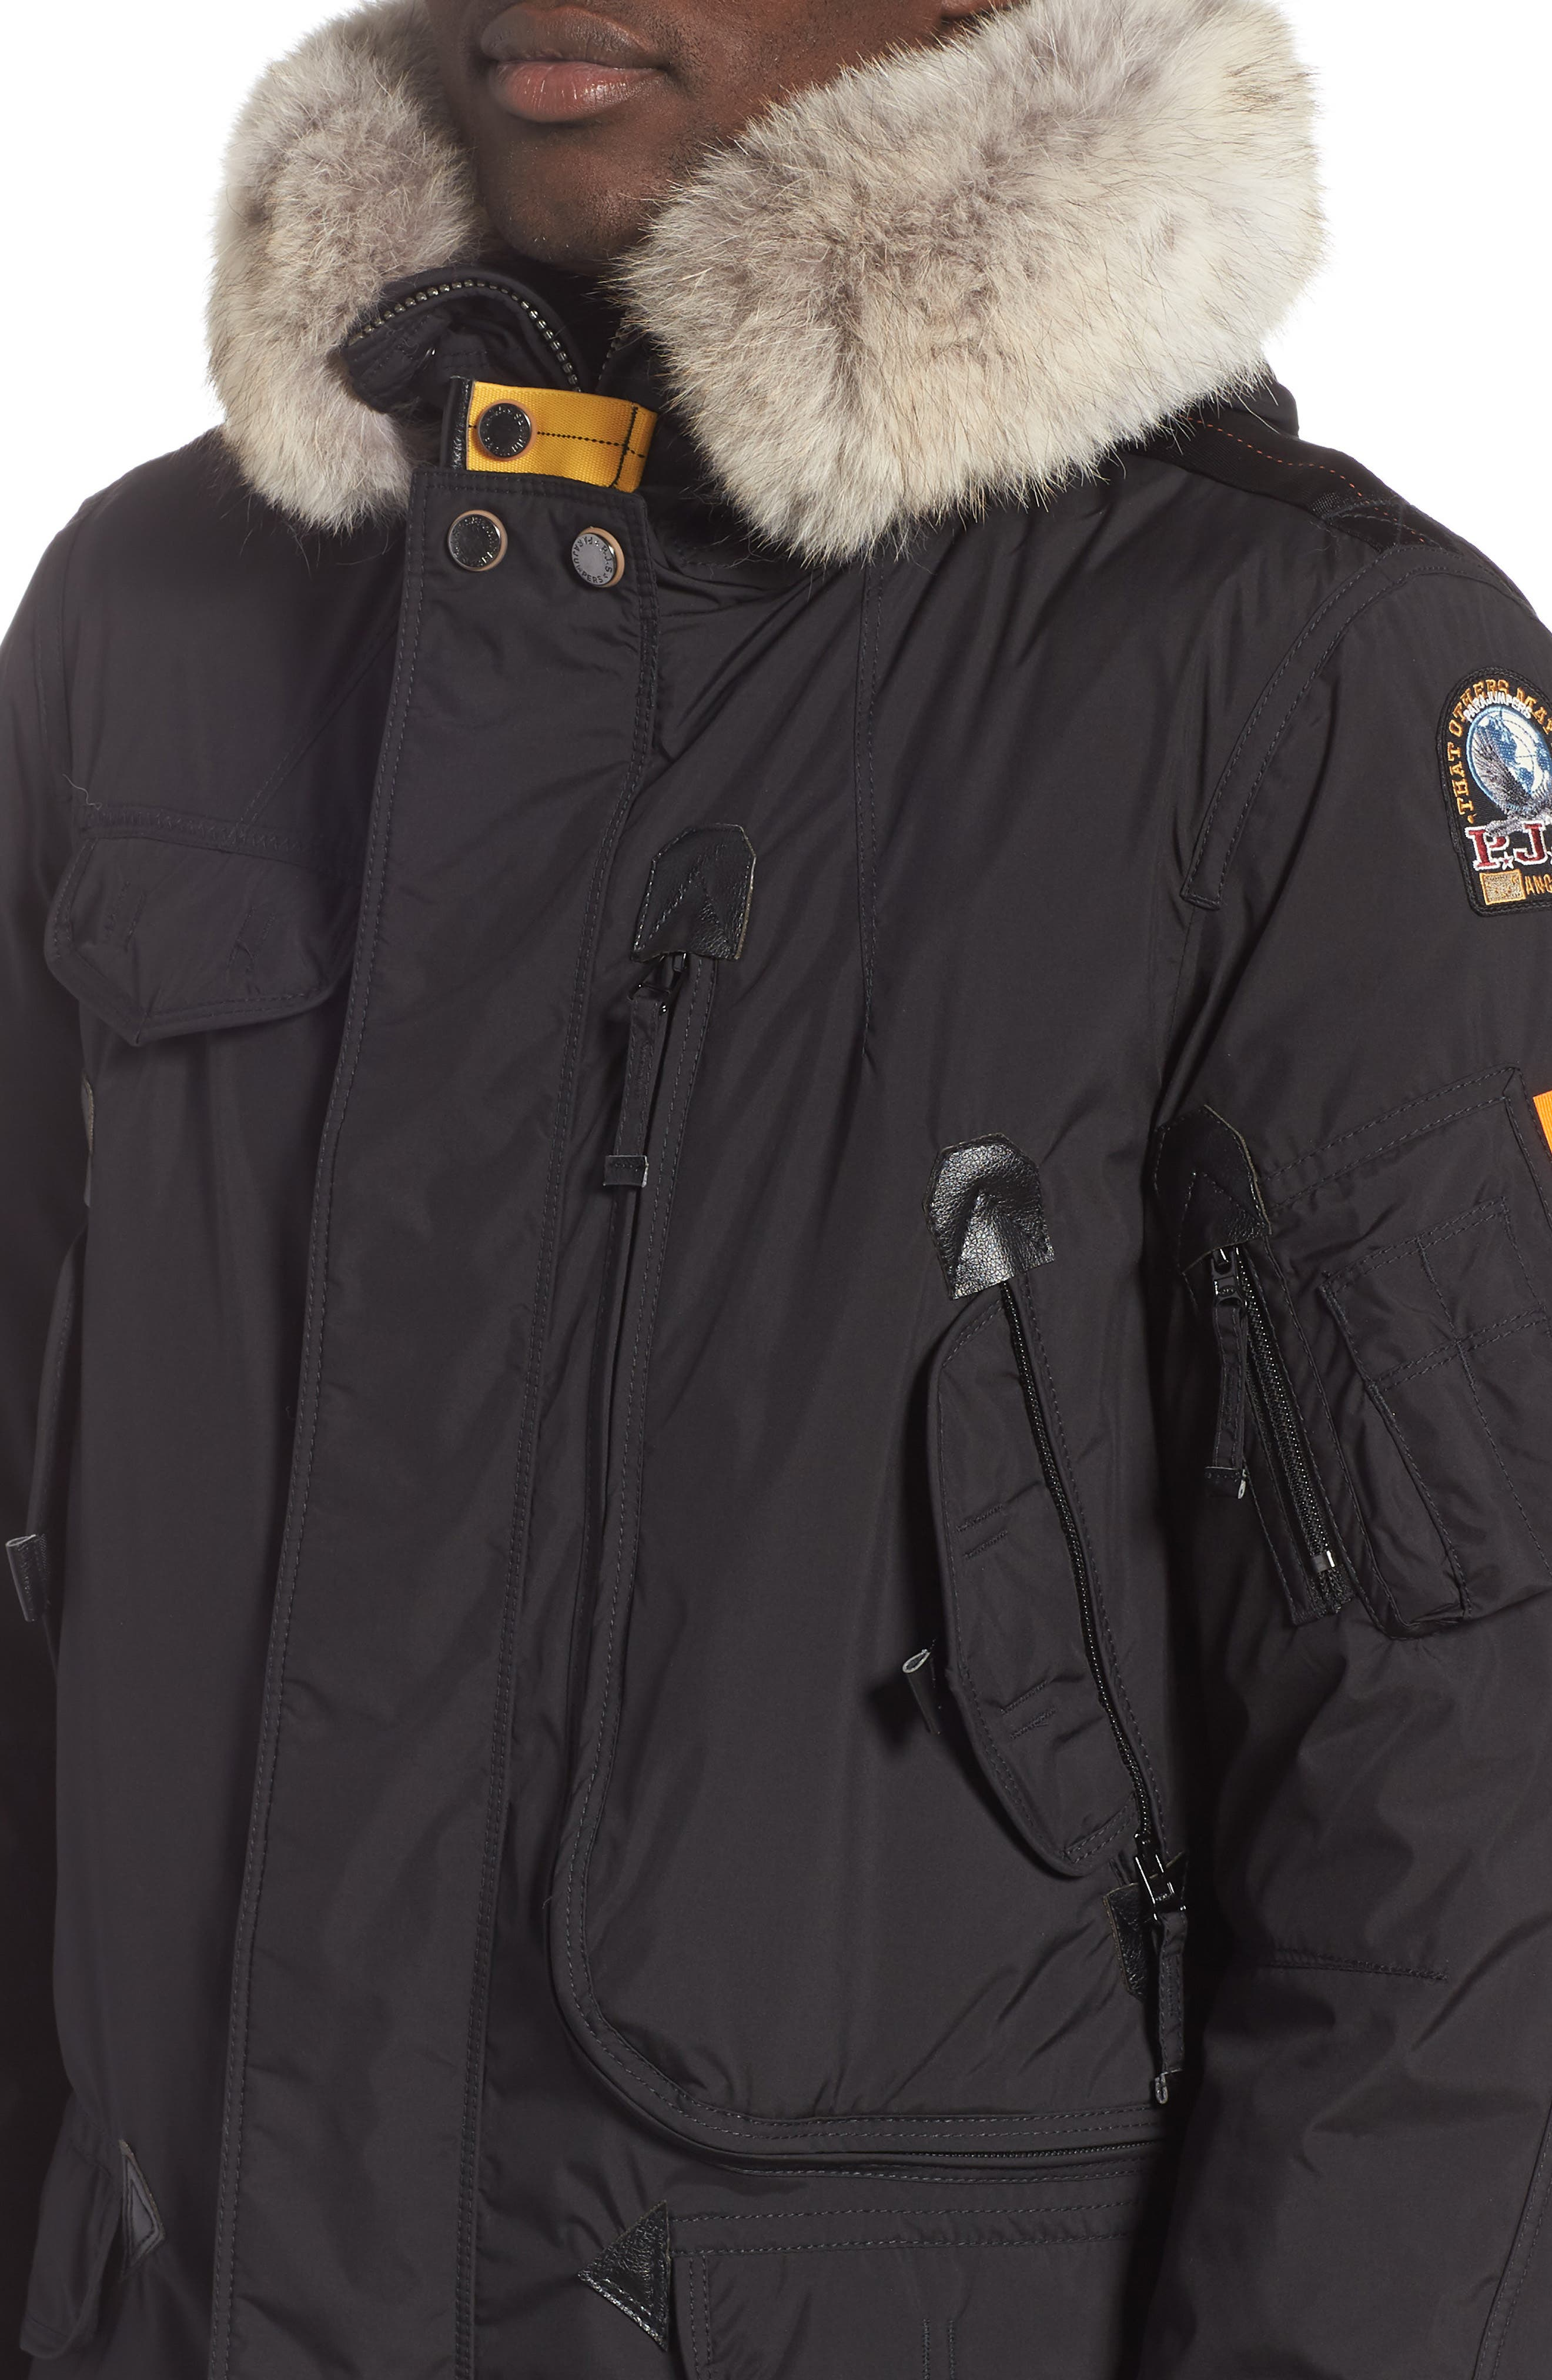 Right Hand Light 700 Fill Power Down Jacket with Genuine Coyote Fur Trim,                             Alternate thumbnail 4, color,                             BLACK